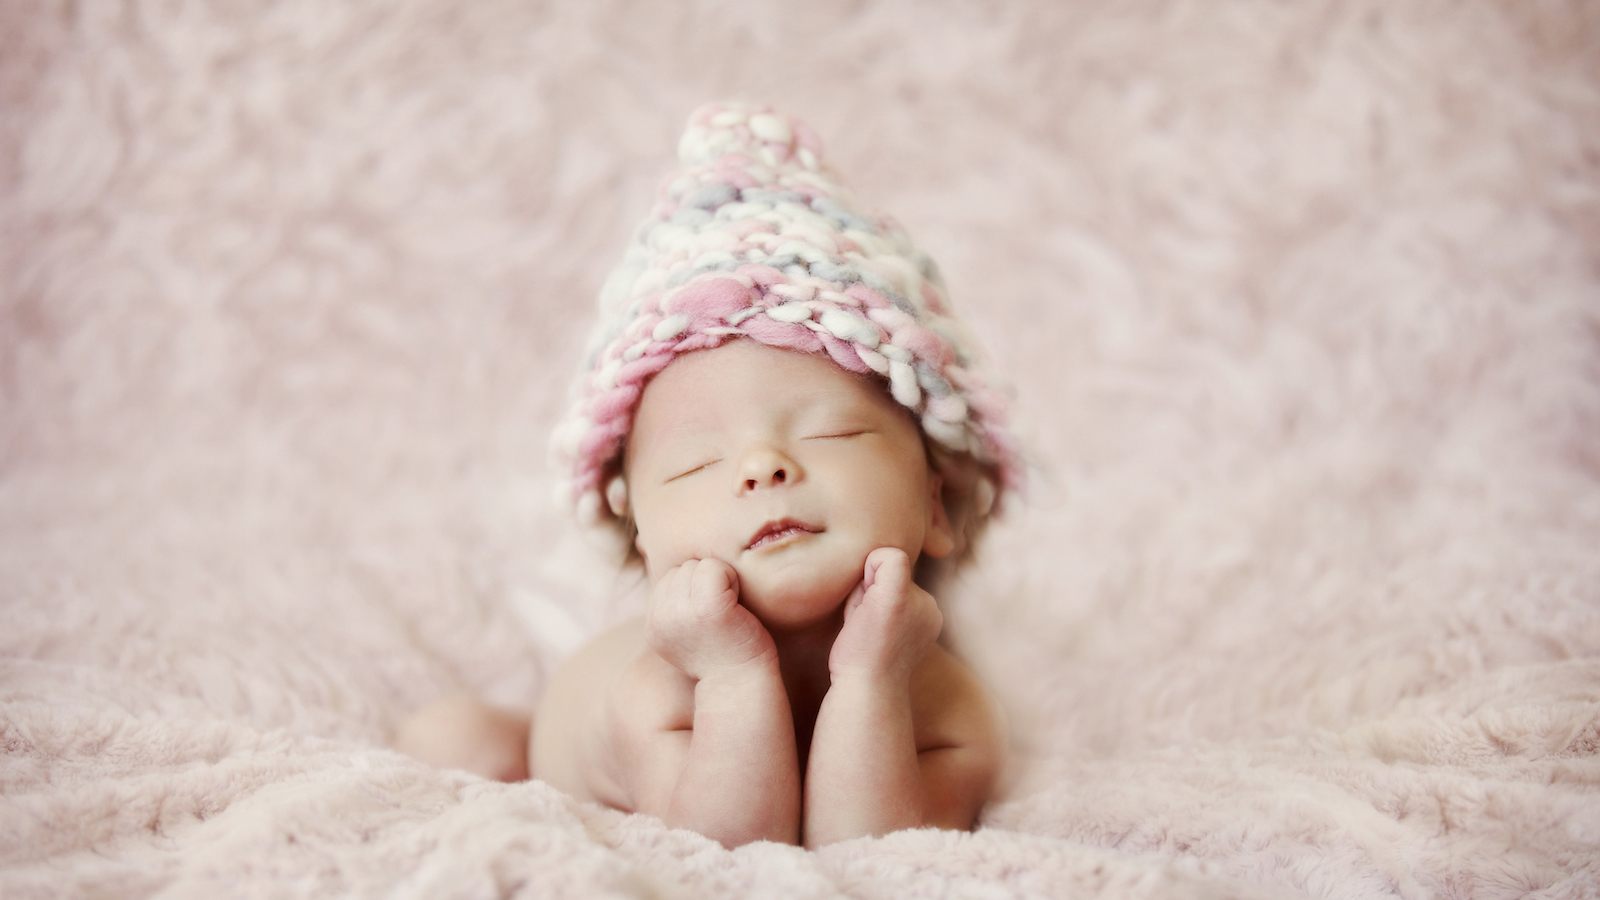 Baby-Photography-Sydney-Simply-Photography-02-3